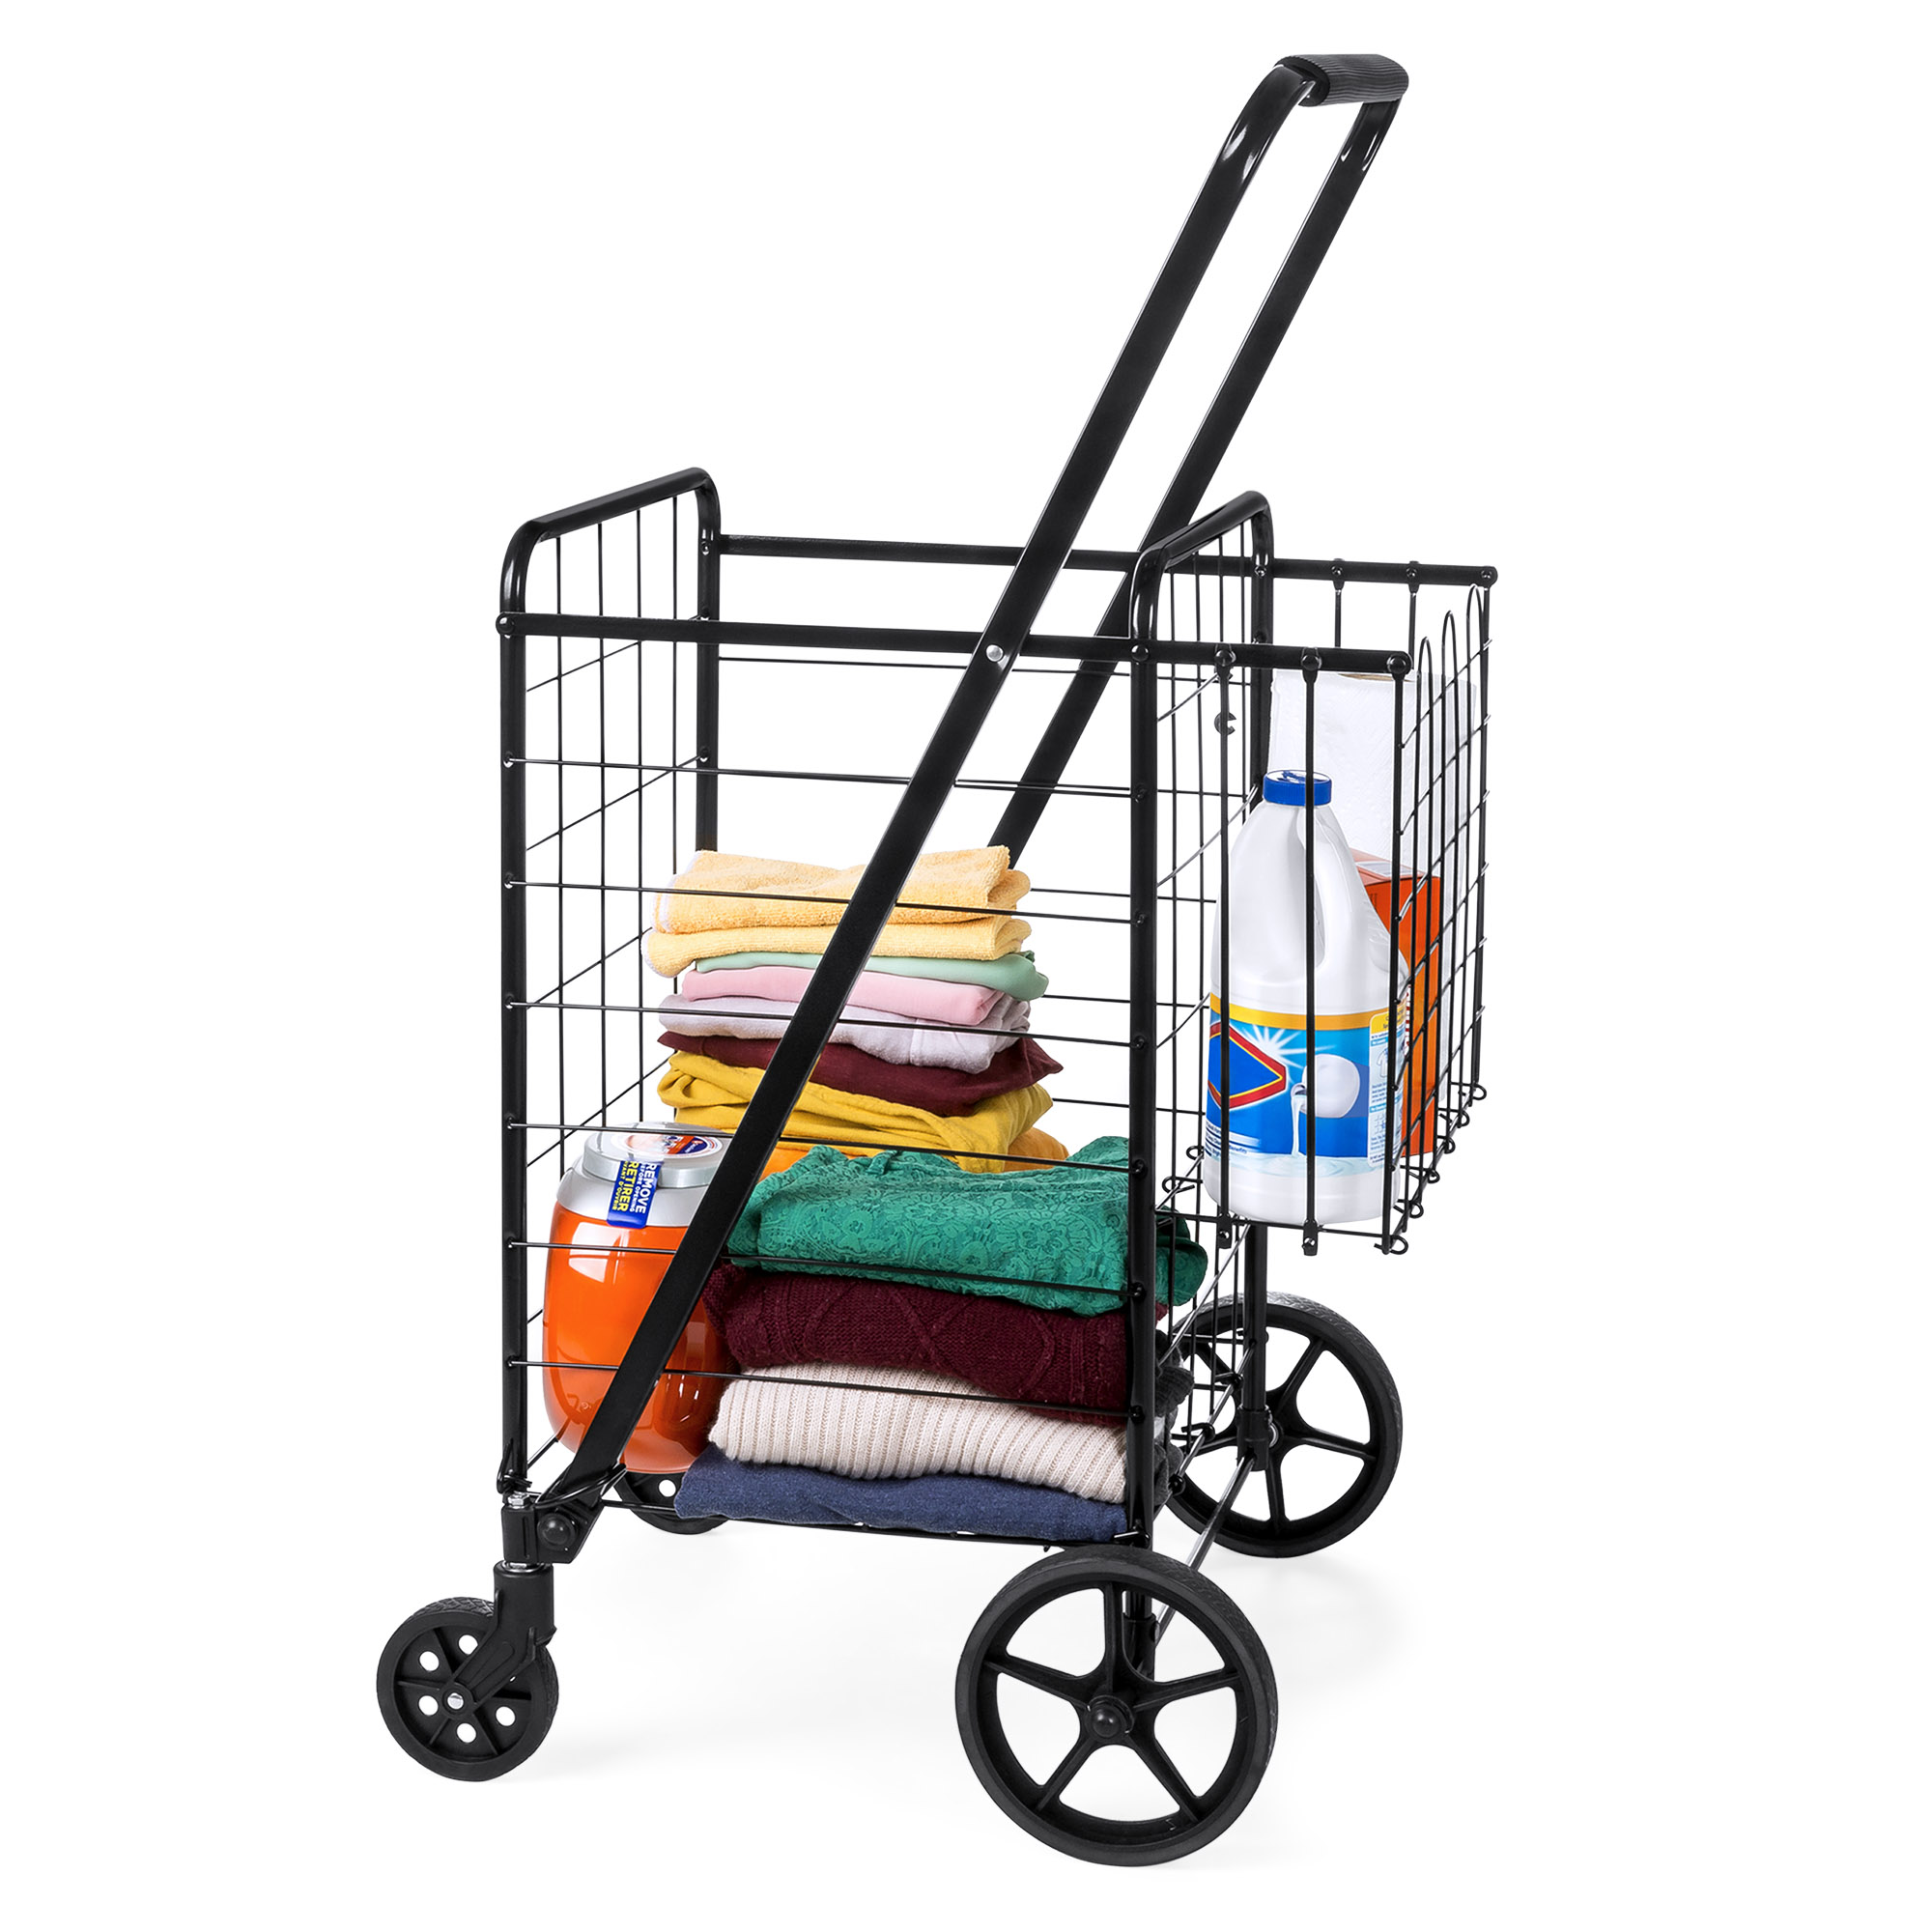 Groceries Laundry w//Bonus Basket Best Choice Products 24.5x21.5in Portable Folding Multipurpose Steel Storage Utility Cart Dolly for Shopping Swivel Double Front Wheels Black